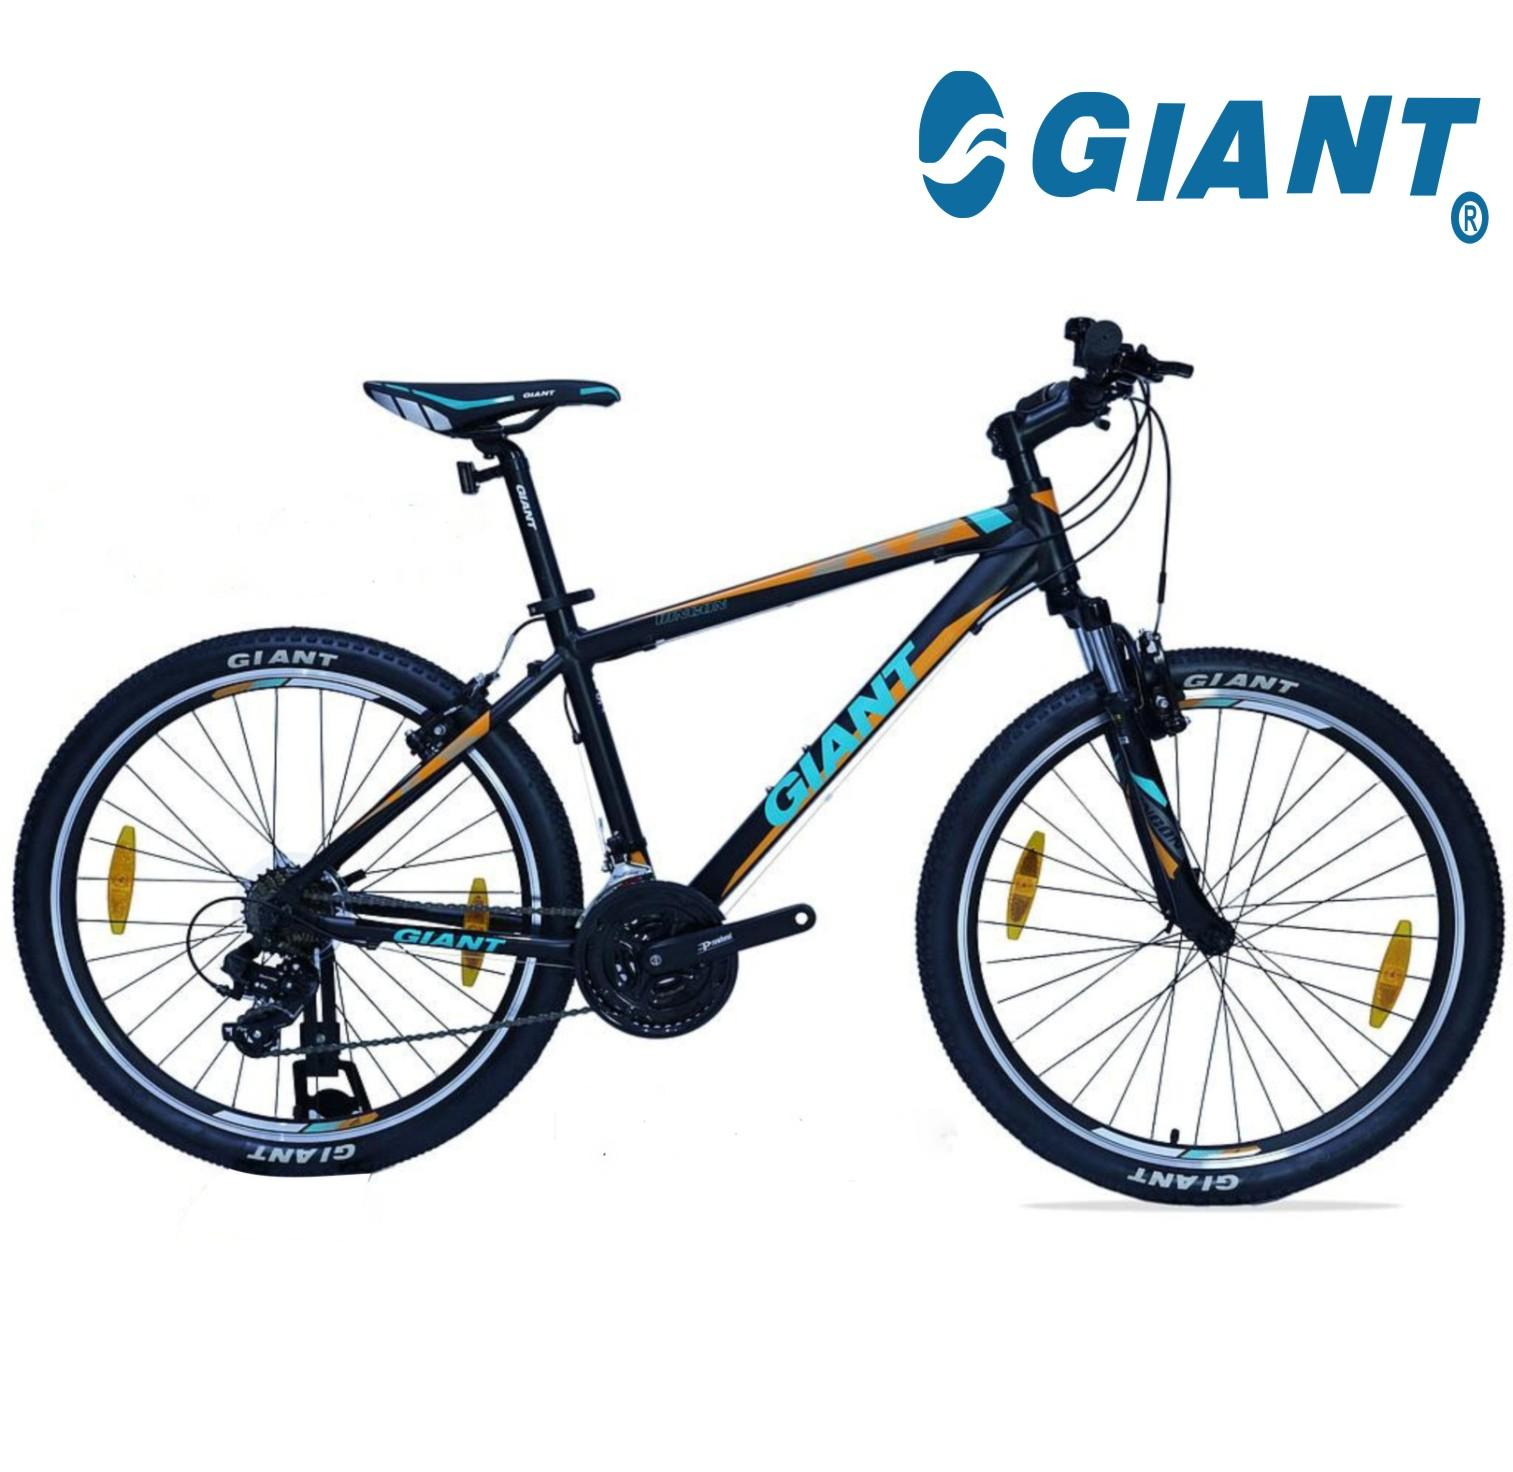 Bicycle - Brand Giant Off Road L-Style/Receat/L/Blk/Grn -  RINCON/Large/Black/Green